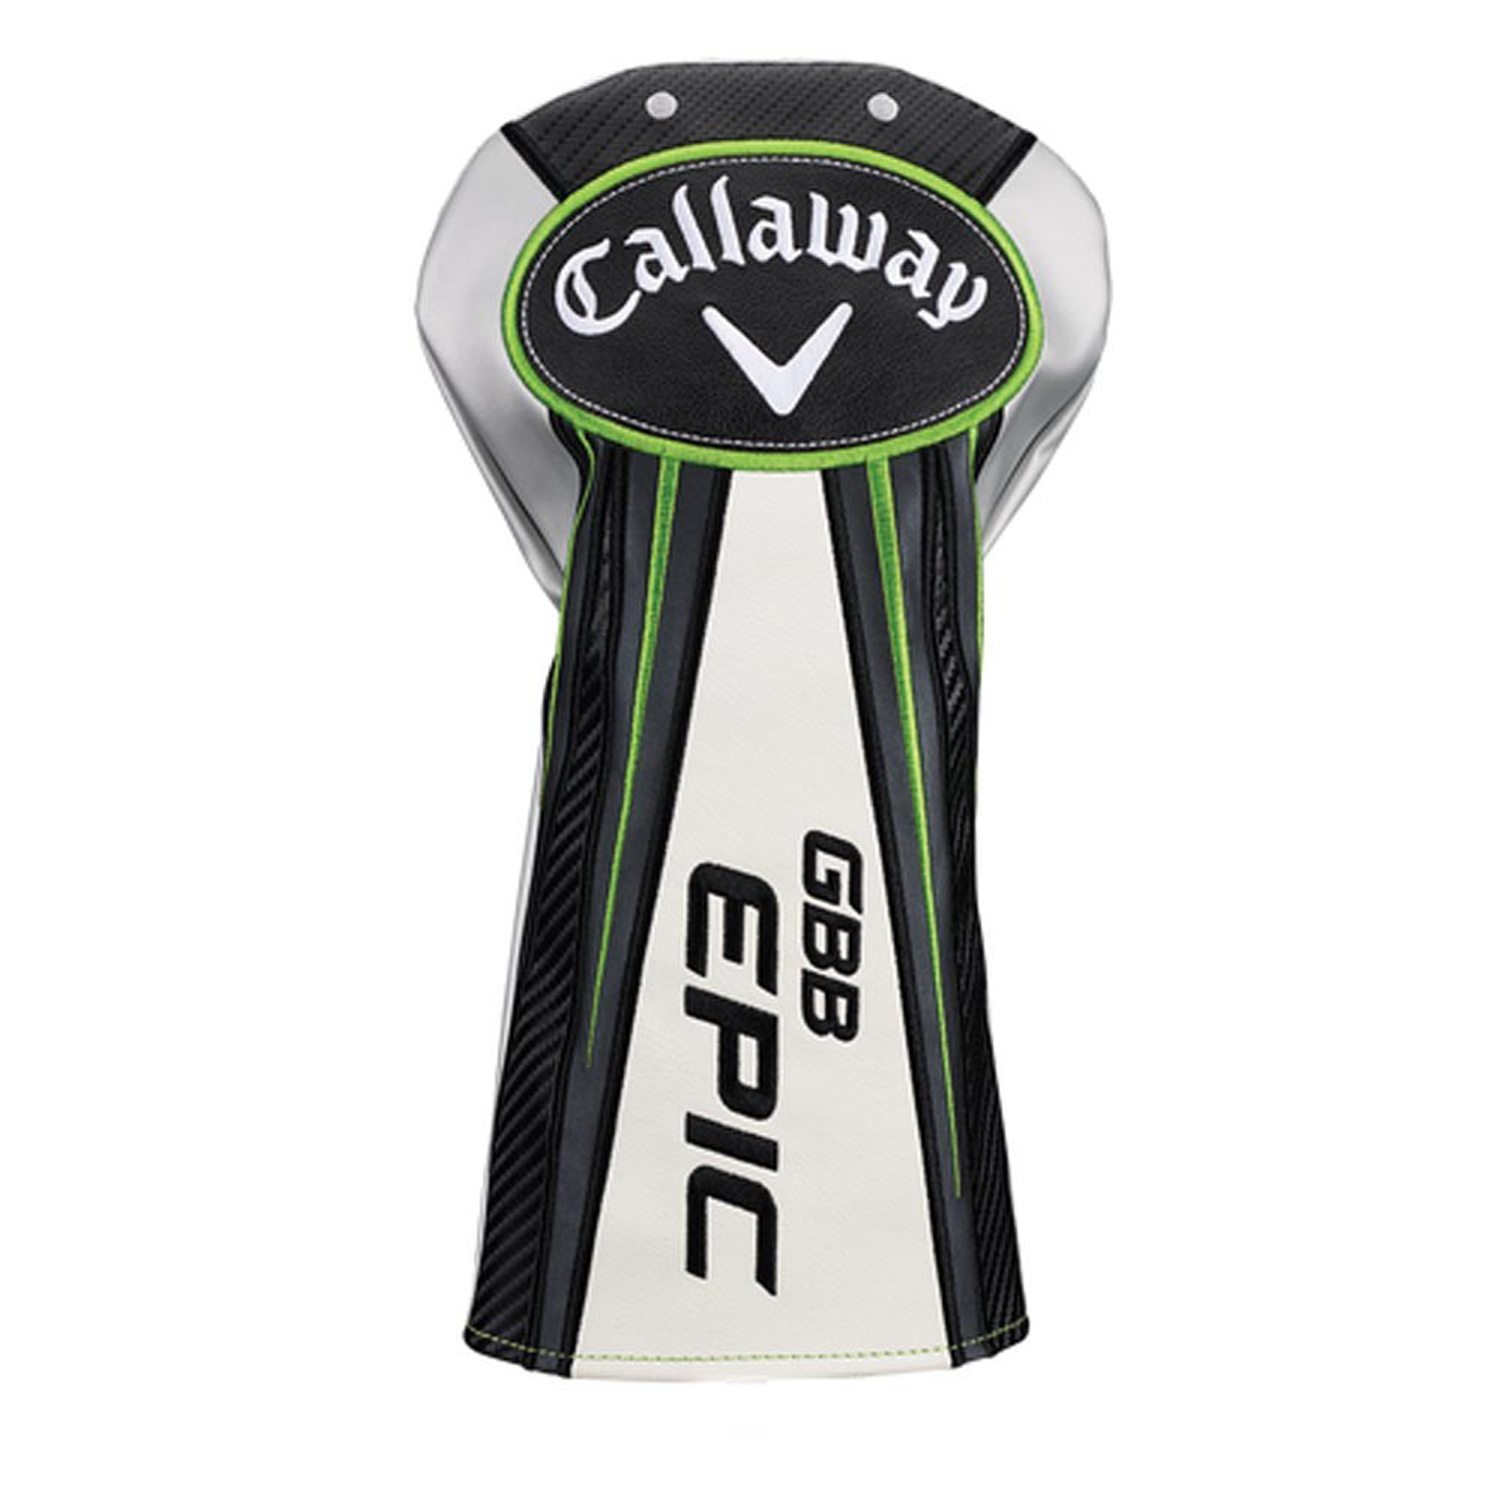 NEW Callaway Golf Great Big Bertha Epic Black/Green Fairway Wood Headcover